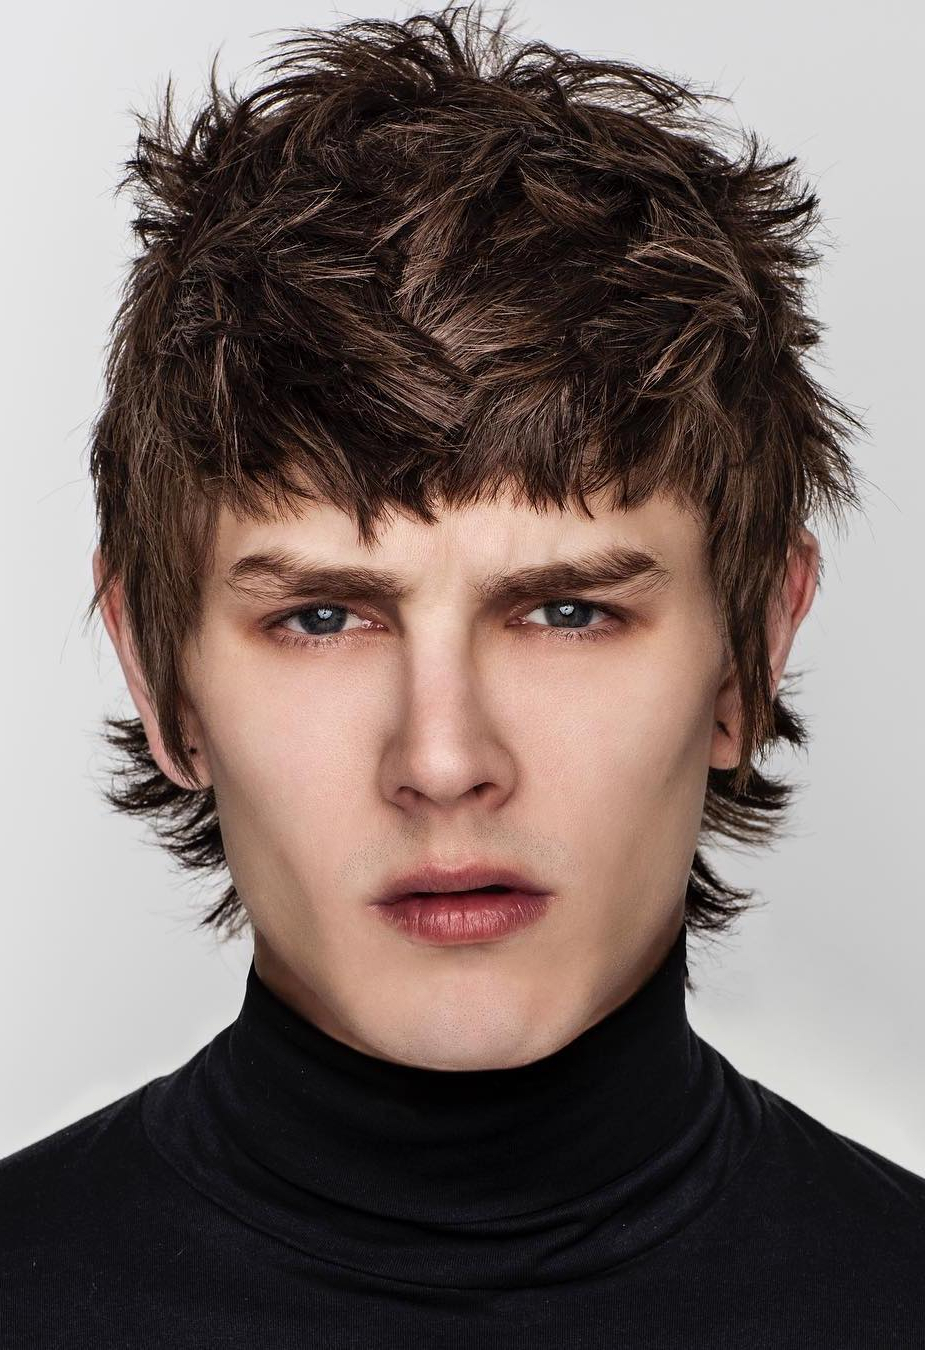 15 The Trendiest Men's Fringe Haircuts Of 2019 Intended For Recent Shattered Choppy Bangs Pixie Haircuts (View 16 of 20)